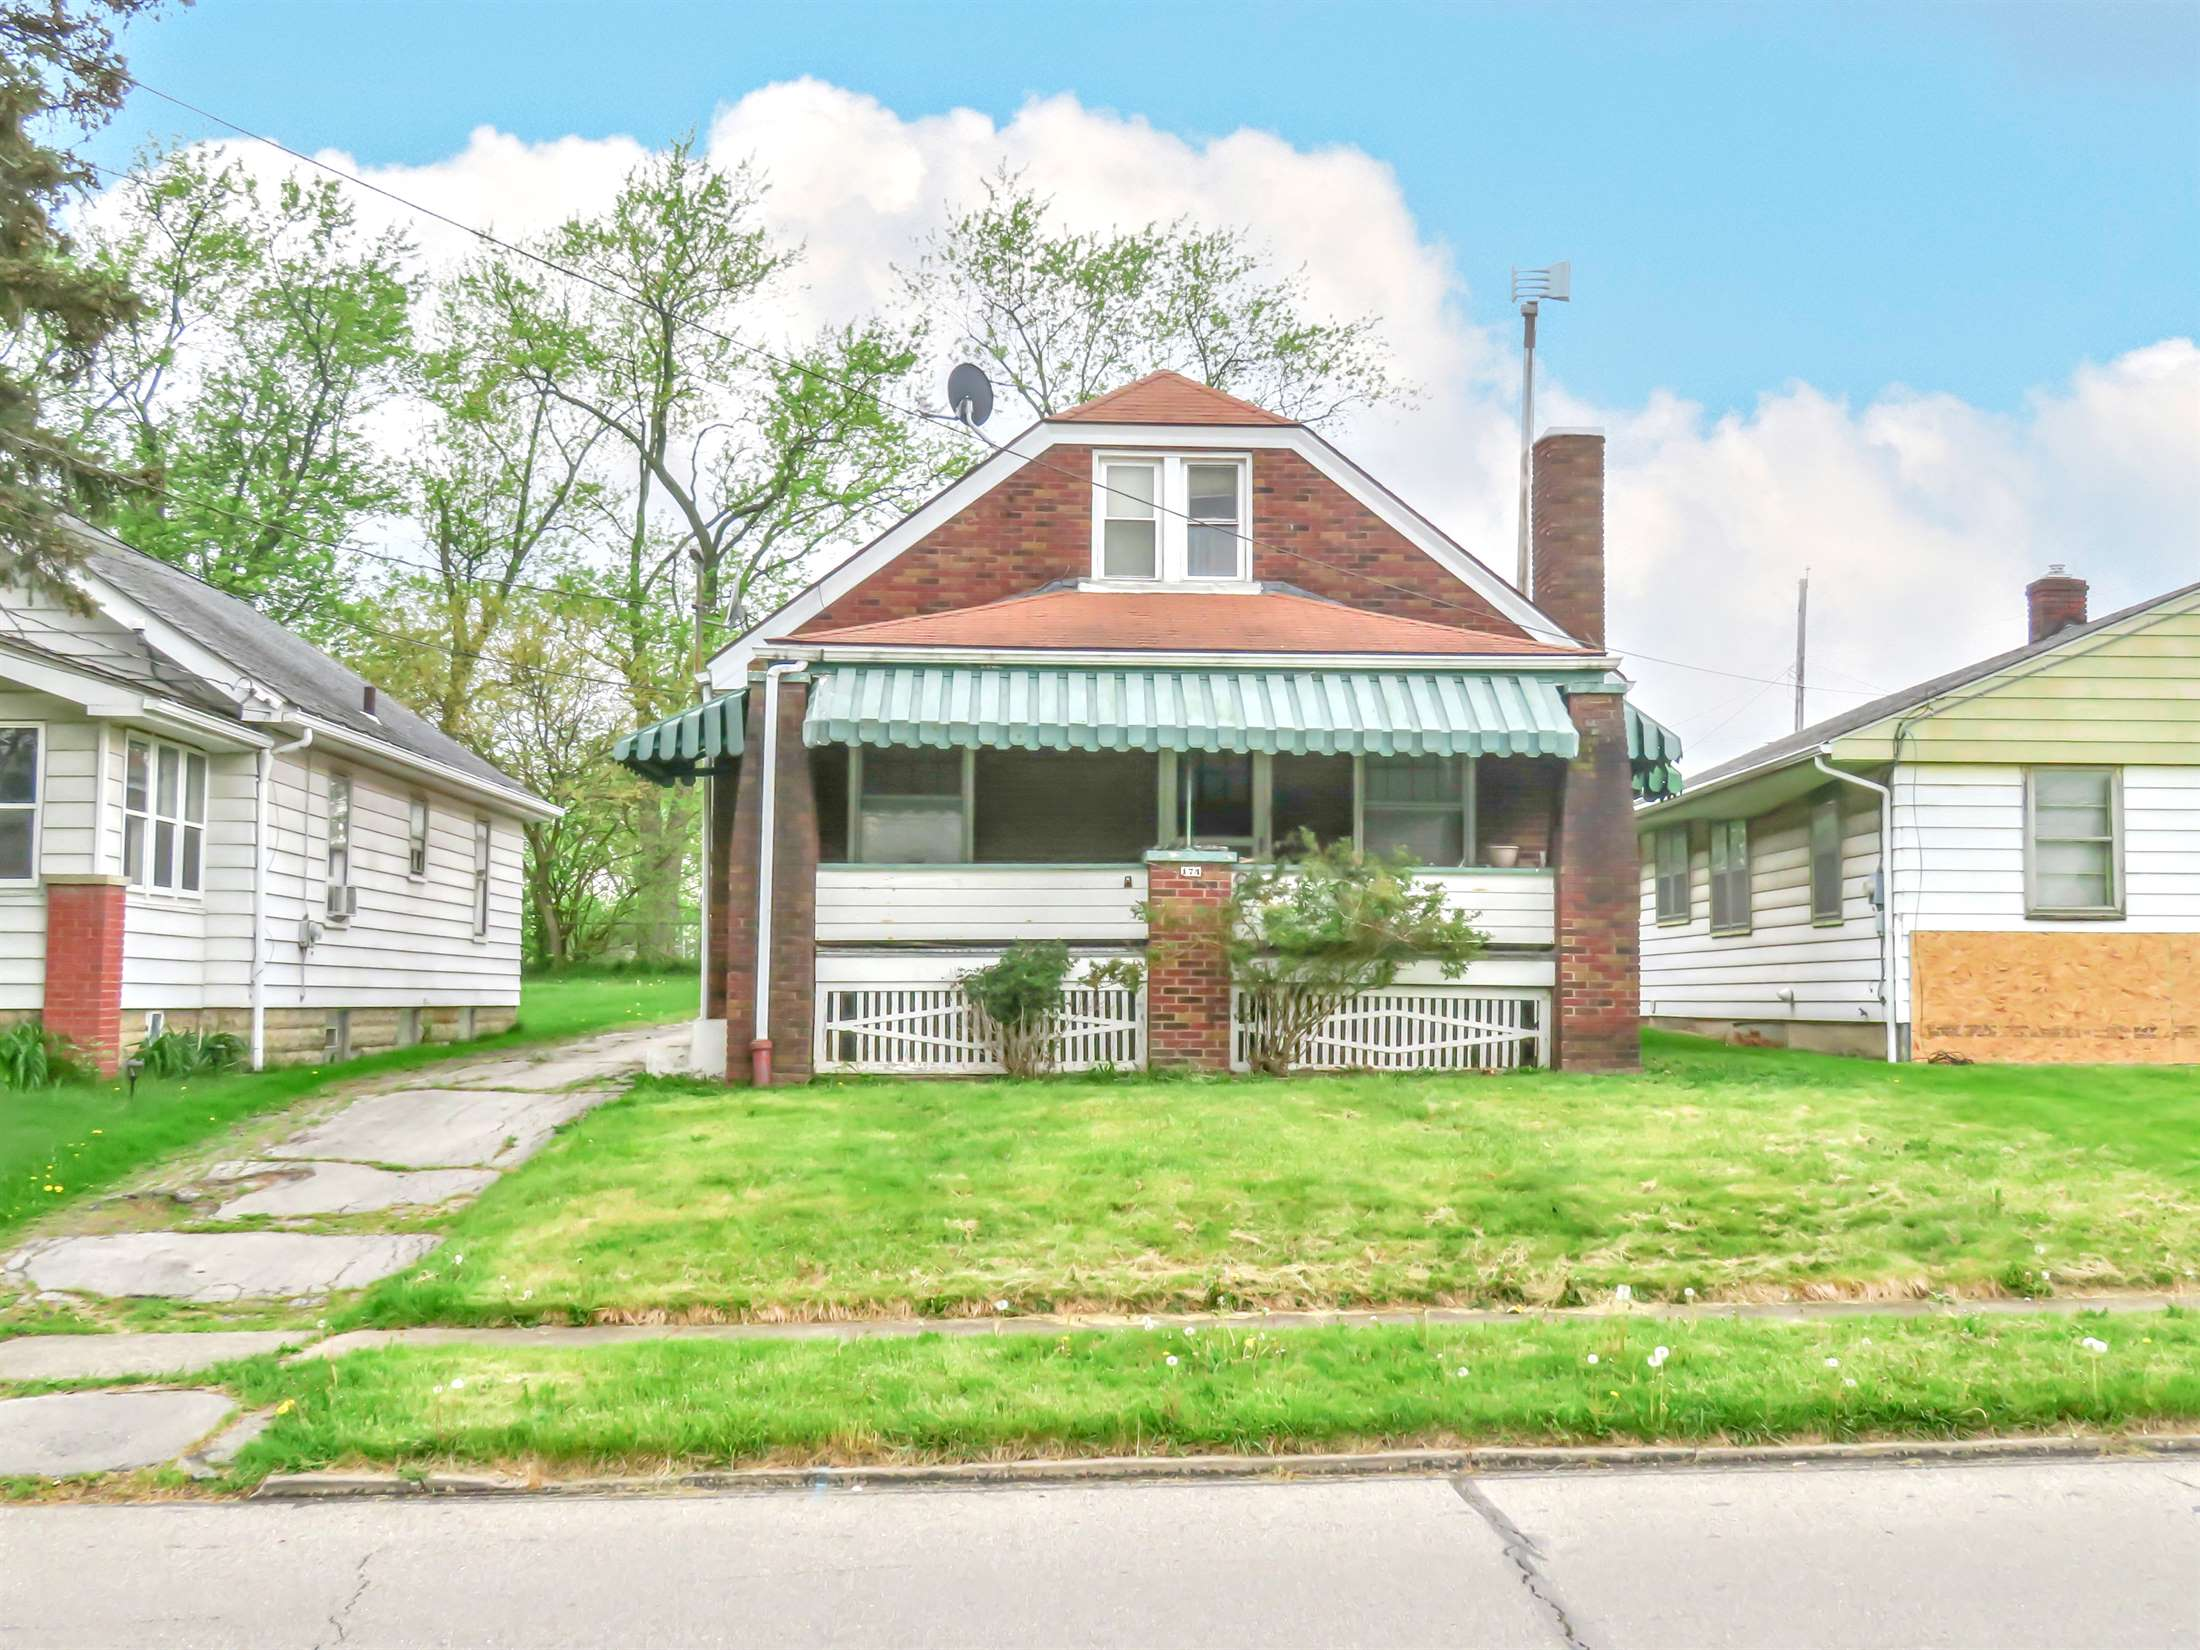 174 North Hazelwood Avenue, Youngstown, OH 44509